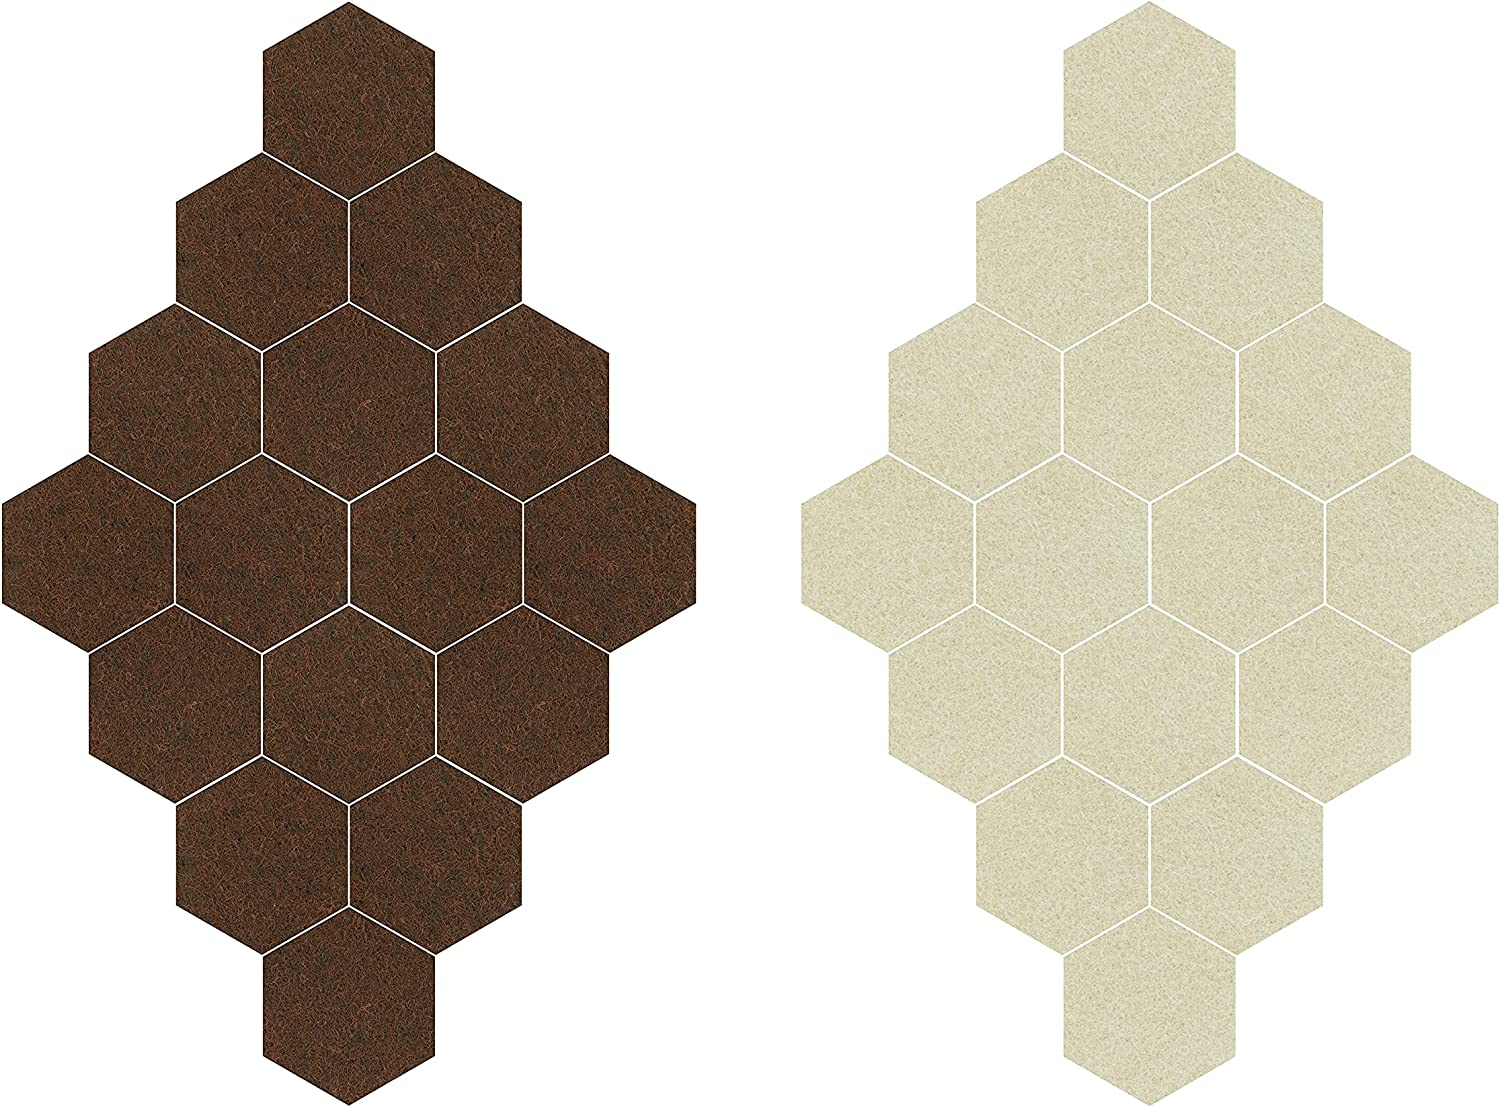 SERIC Felt Furniture Pads,96pcs Hexagon Floor Protectors,Help You Reduce Noise and Keep Floors Beautiful with Self Adhesive Pads,Anti Scratch Furniture Pads for Hardwood Floors.(Brown+Beige)(¾ inches)